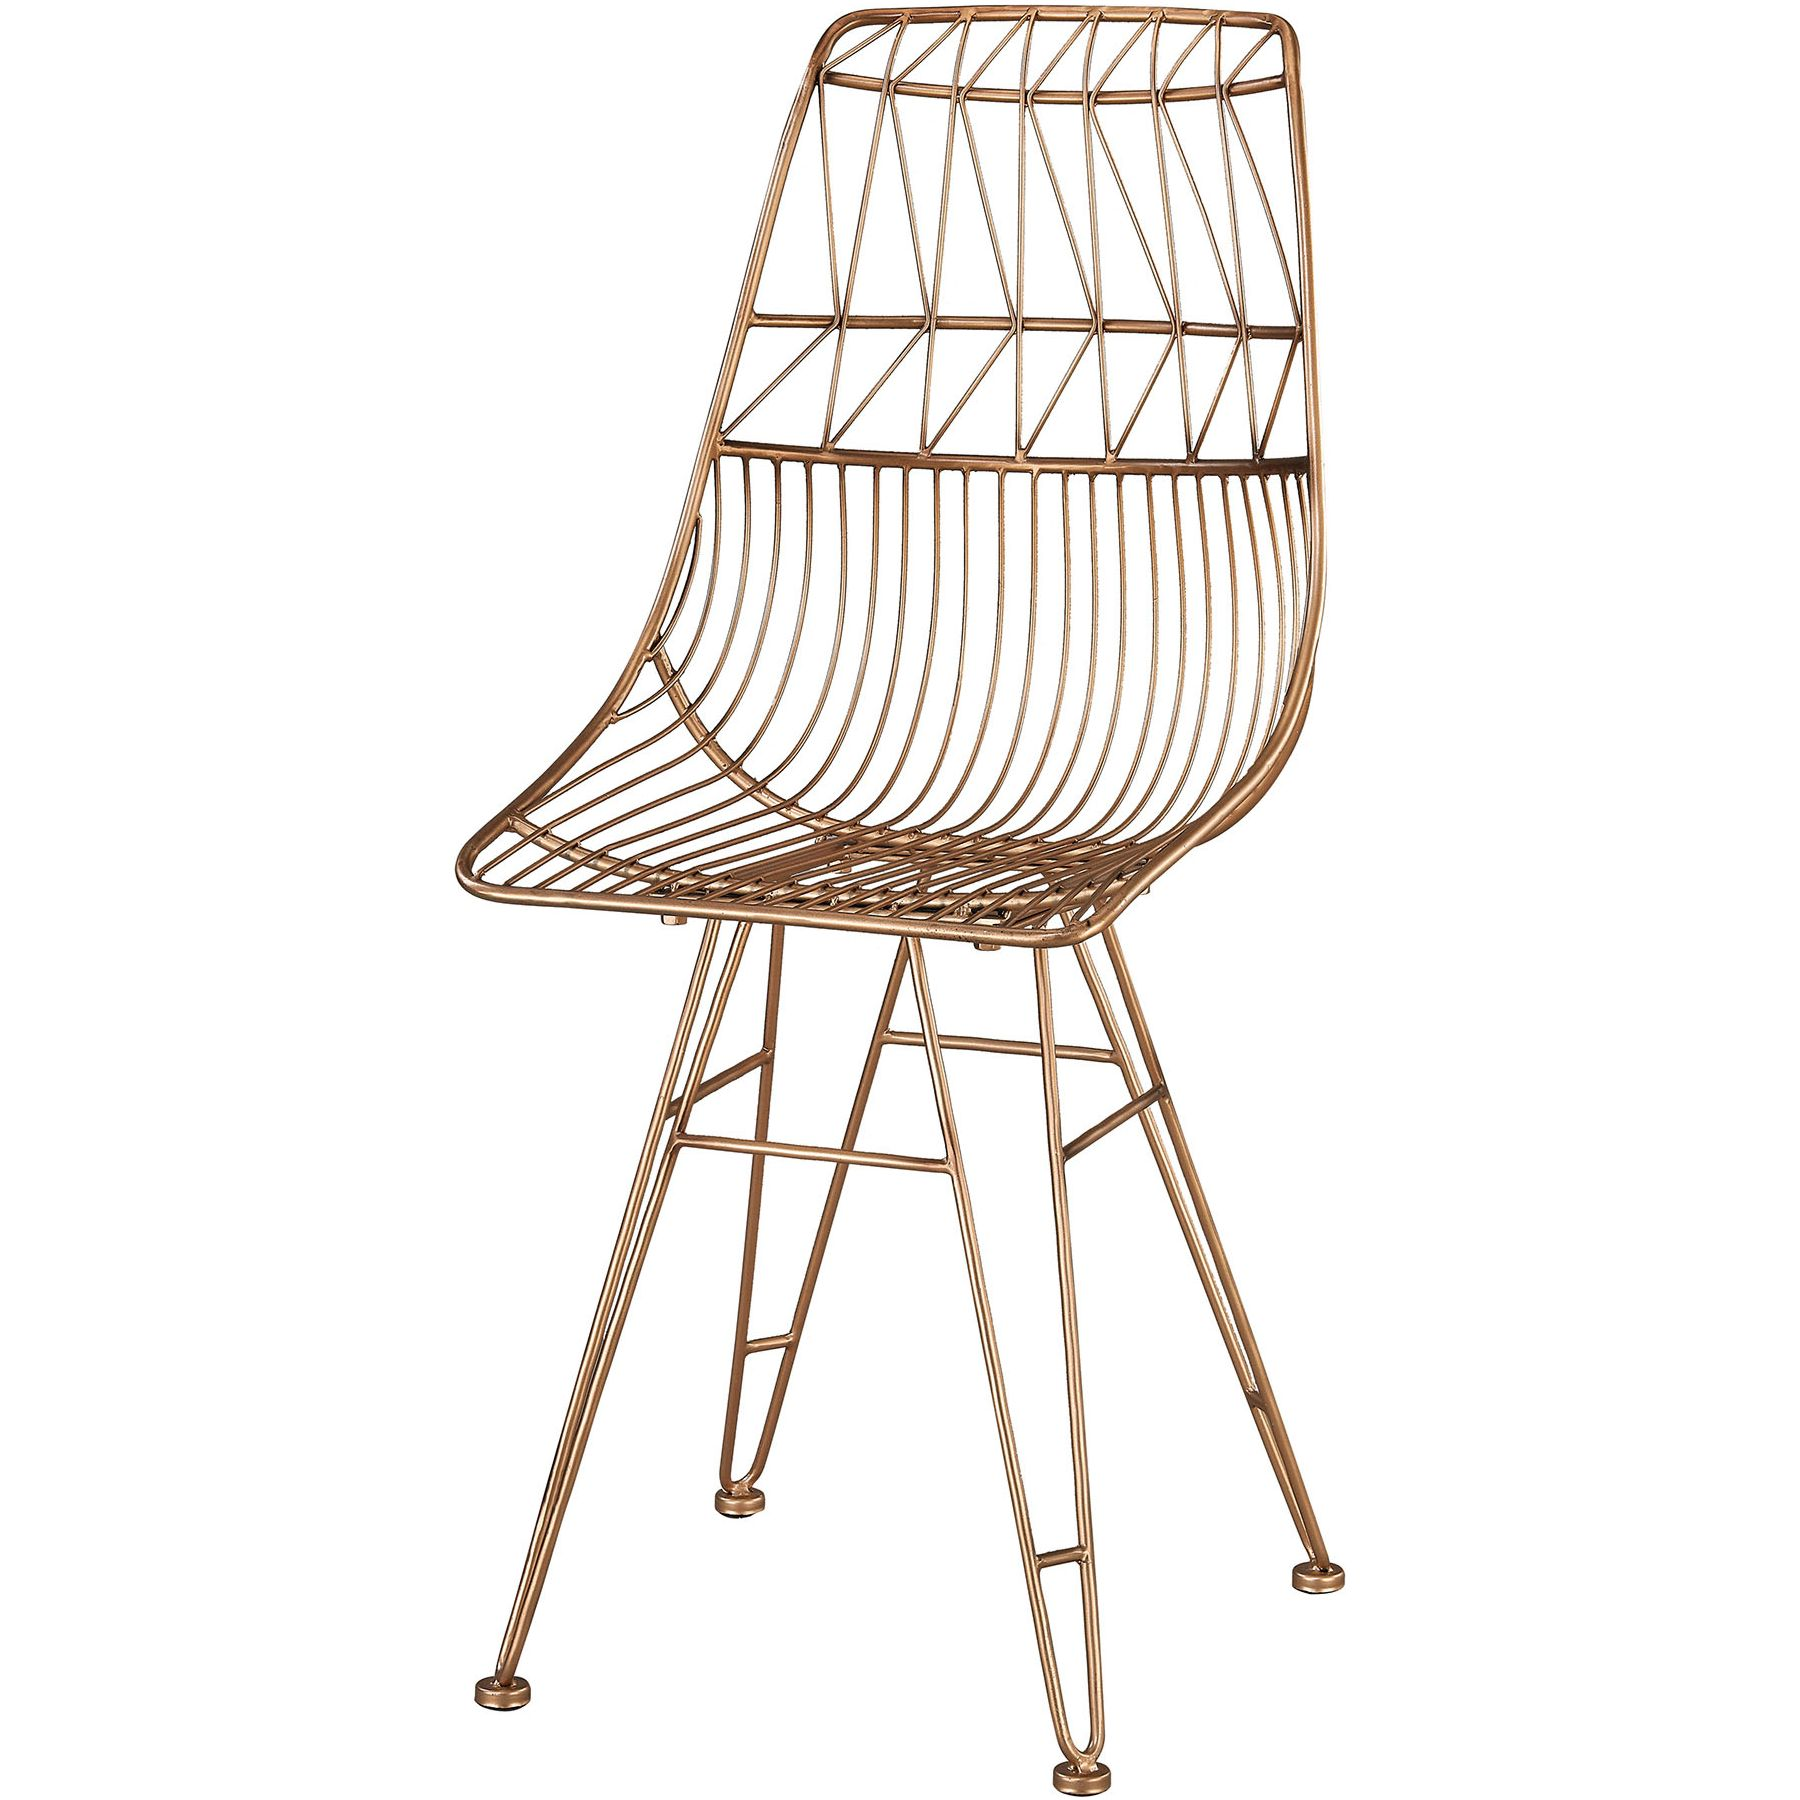 Sterling Industries Jette Accent Chair in Rose Gold Geometric